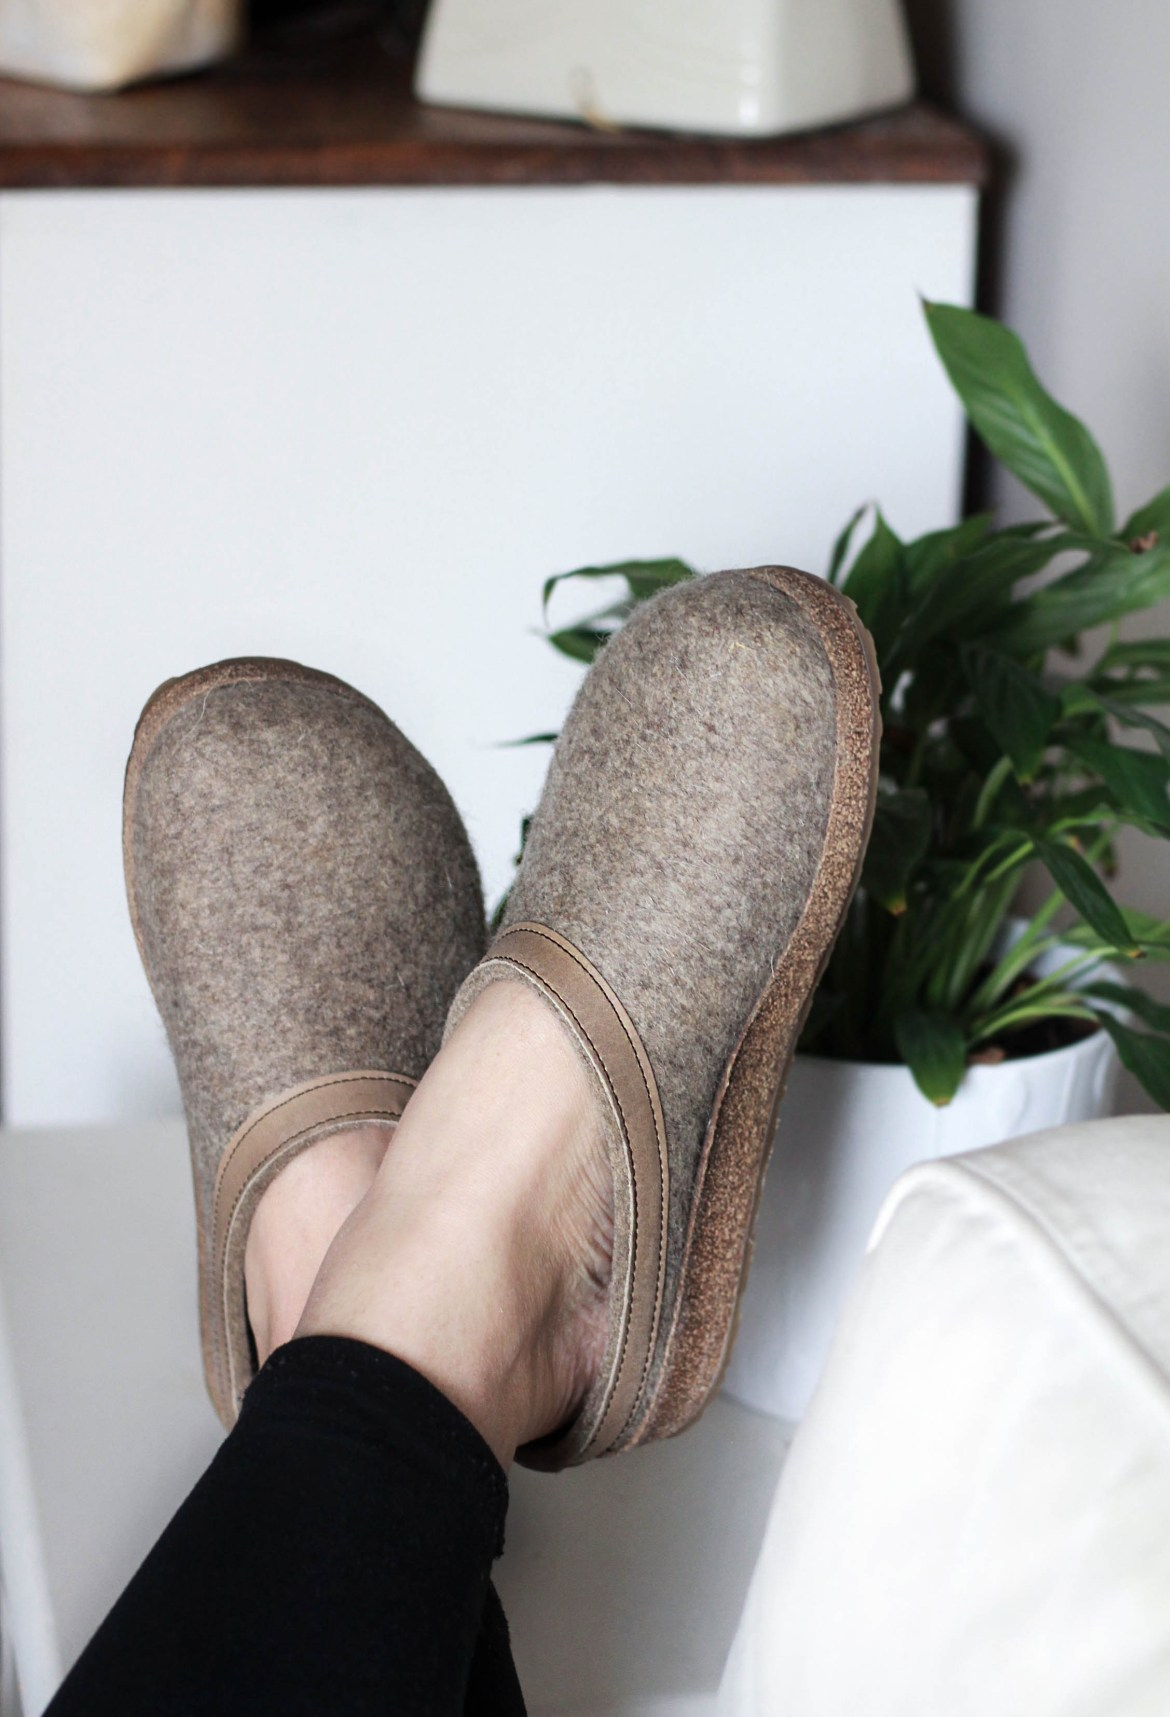 f7587ce475b5 Haflinger is a German company and a family owned and operated business that  creates and manufactures comfy shoes and slippers. They have been operating  for ...